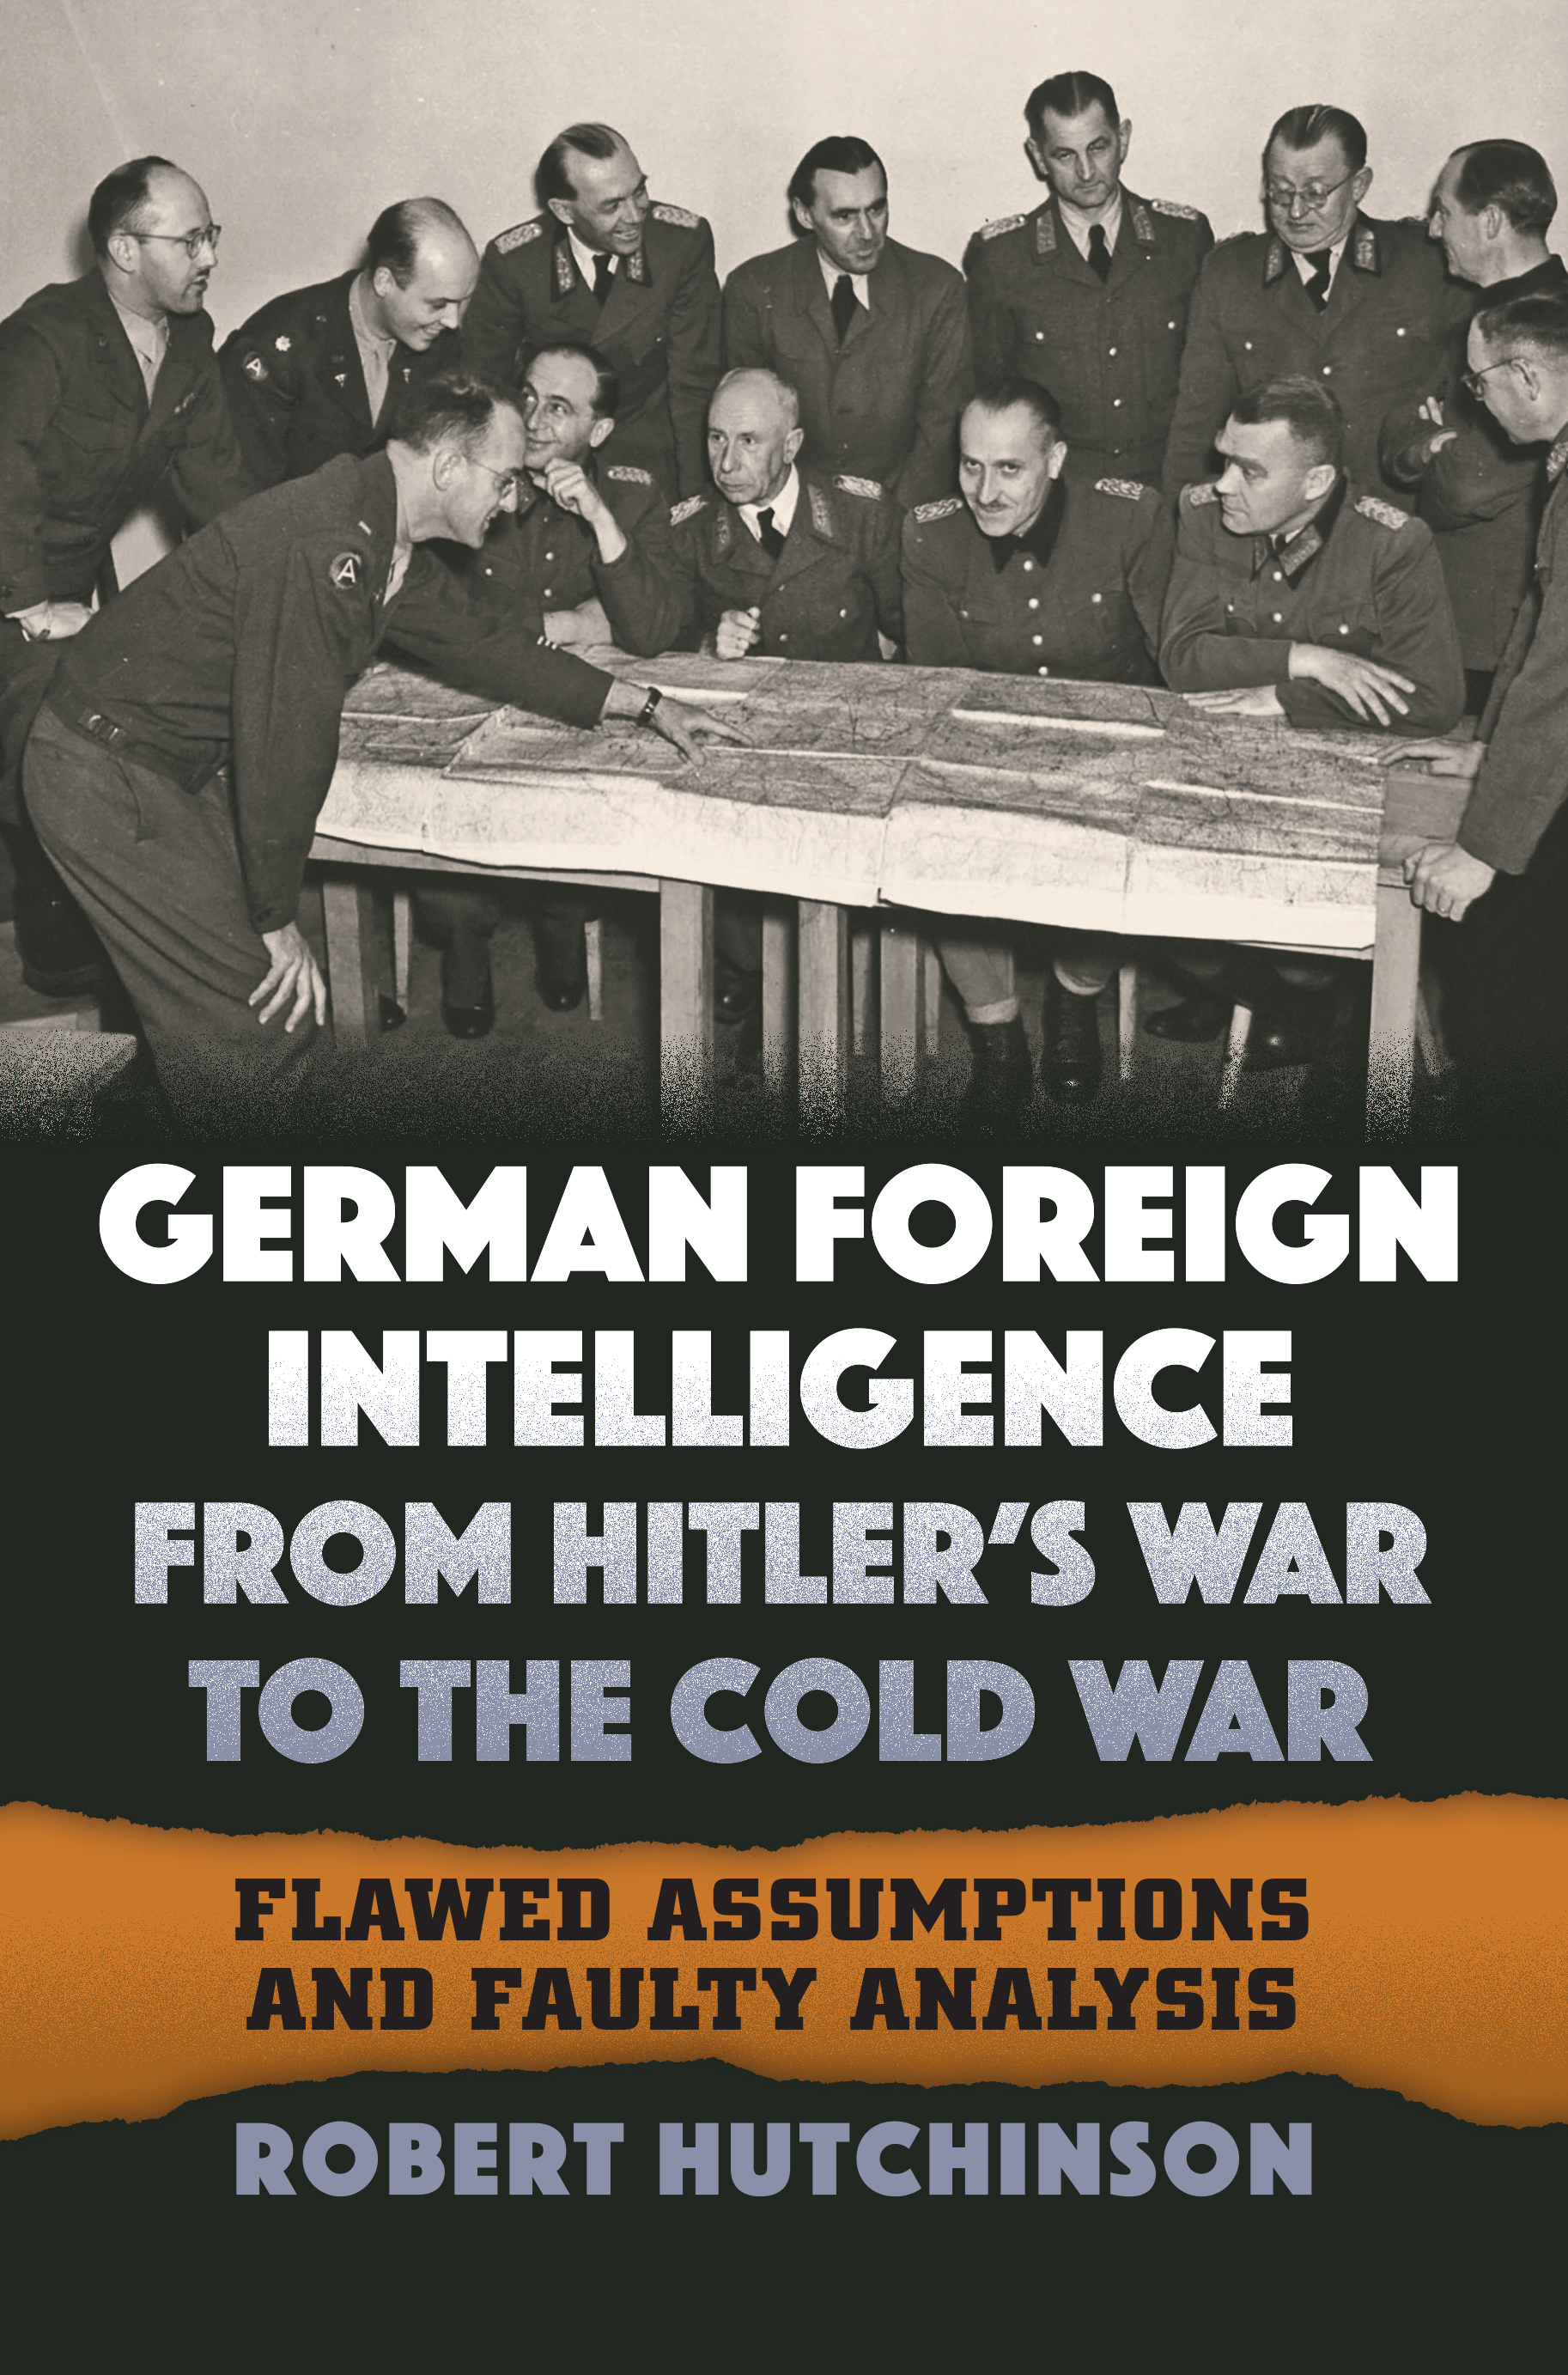 <em>German Foreign Intelligence from Hitler's War to the Cold War: Flawed Assumptions and Faulty Analysis</em>